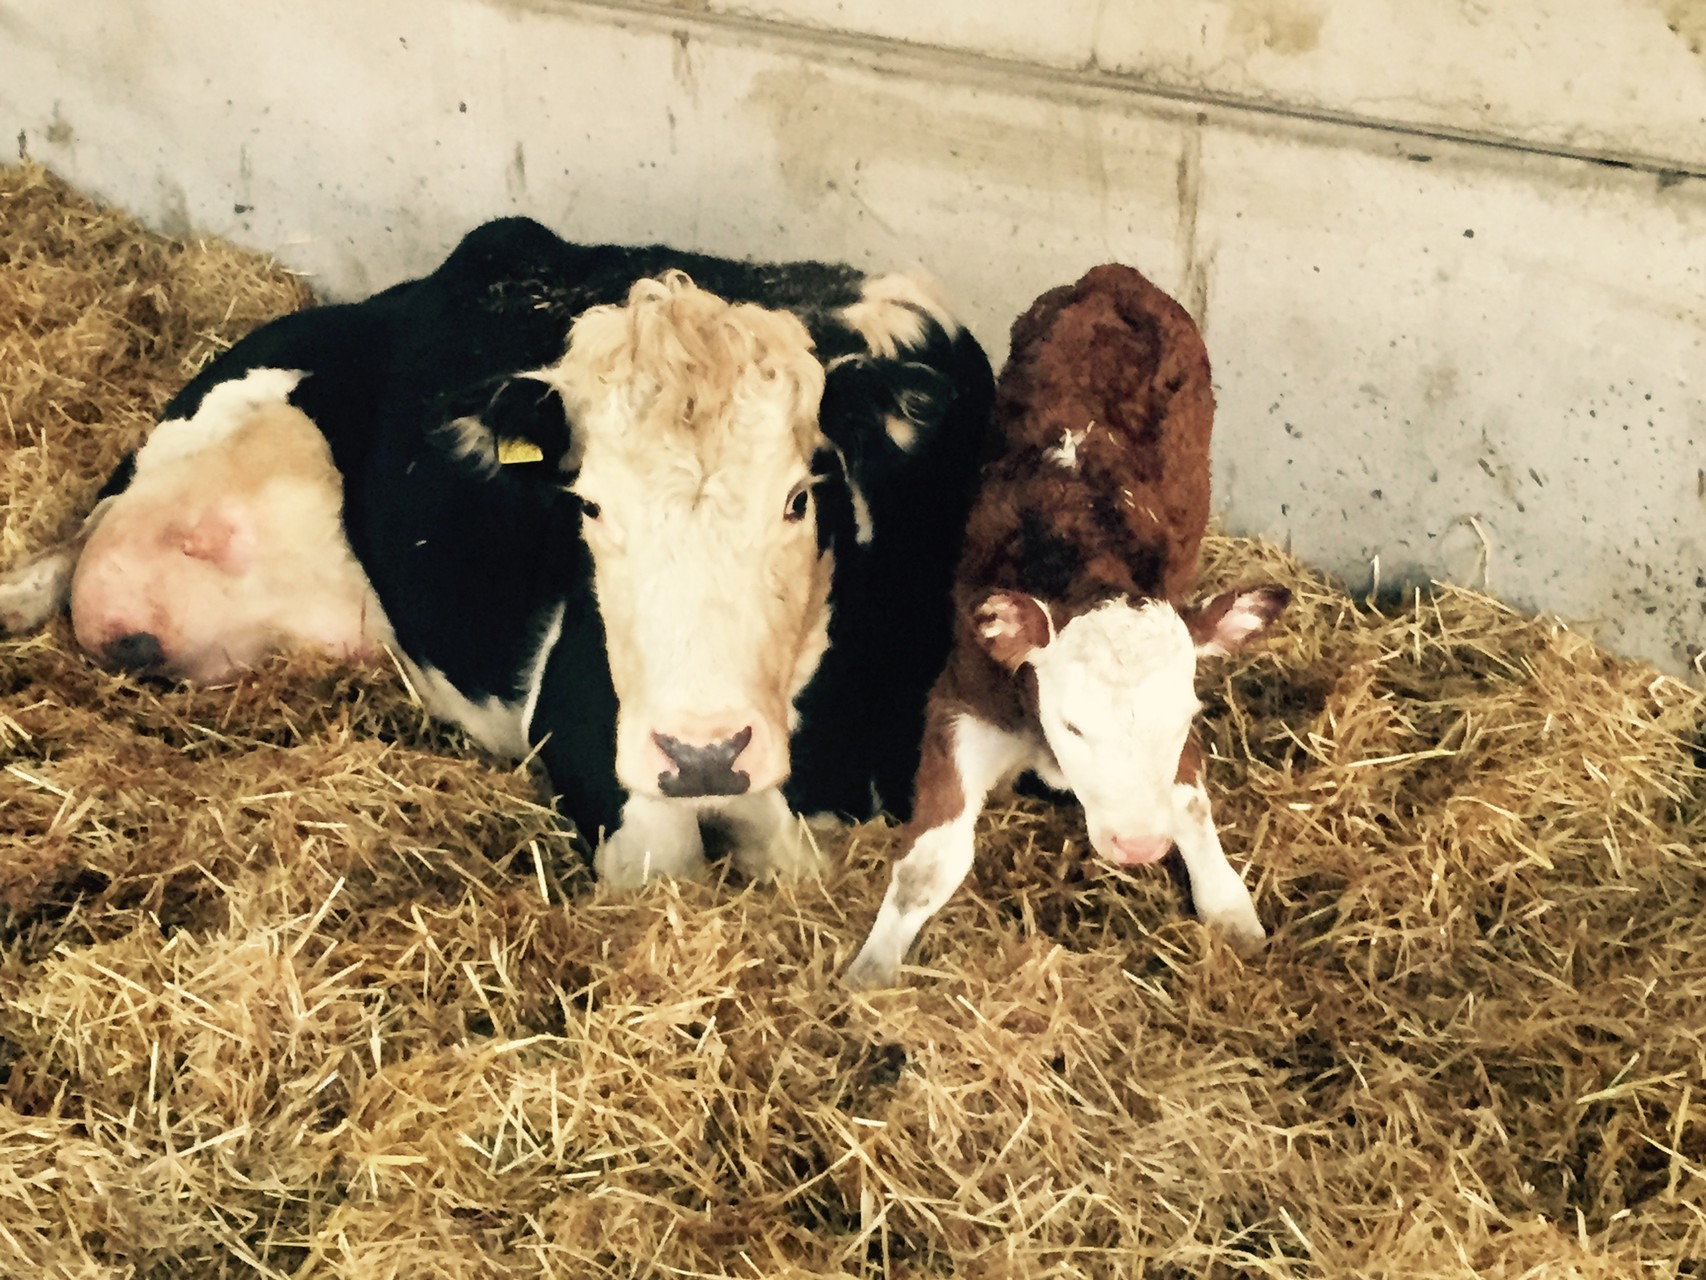 Proud mum Mrs Charles with her daughter Charlene, the first calf born in 2016